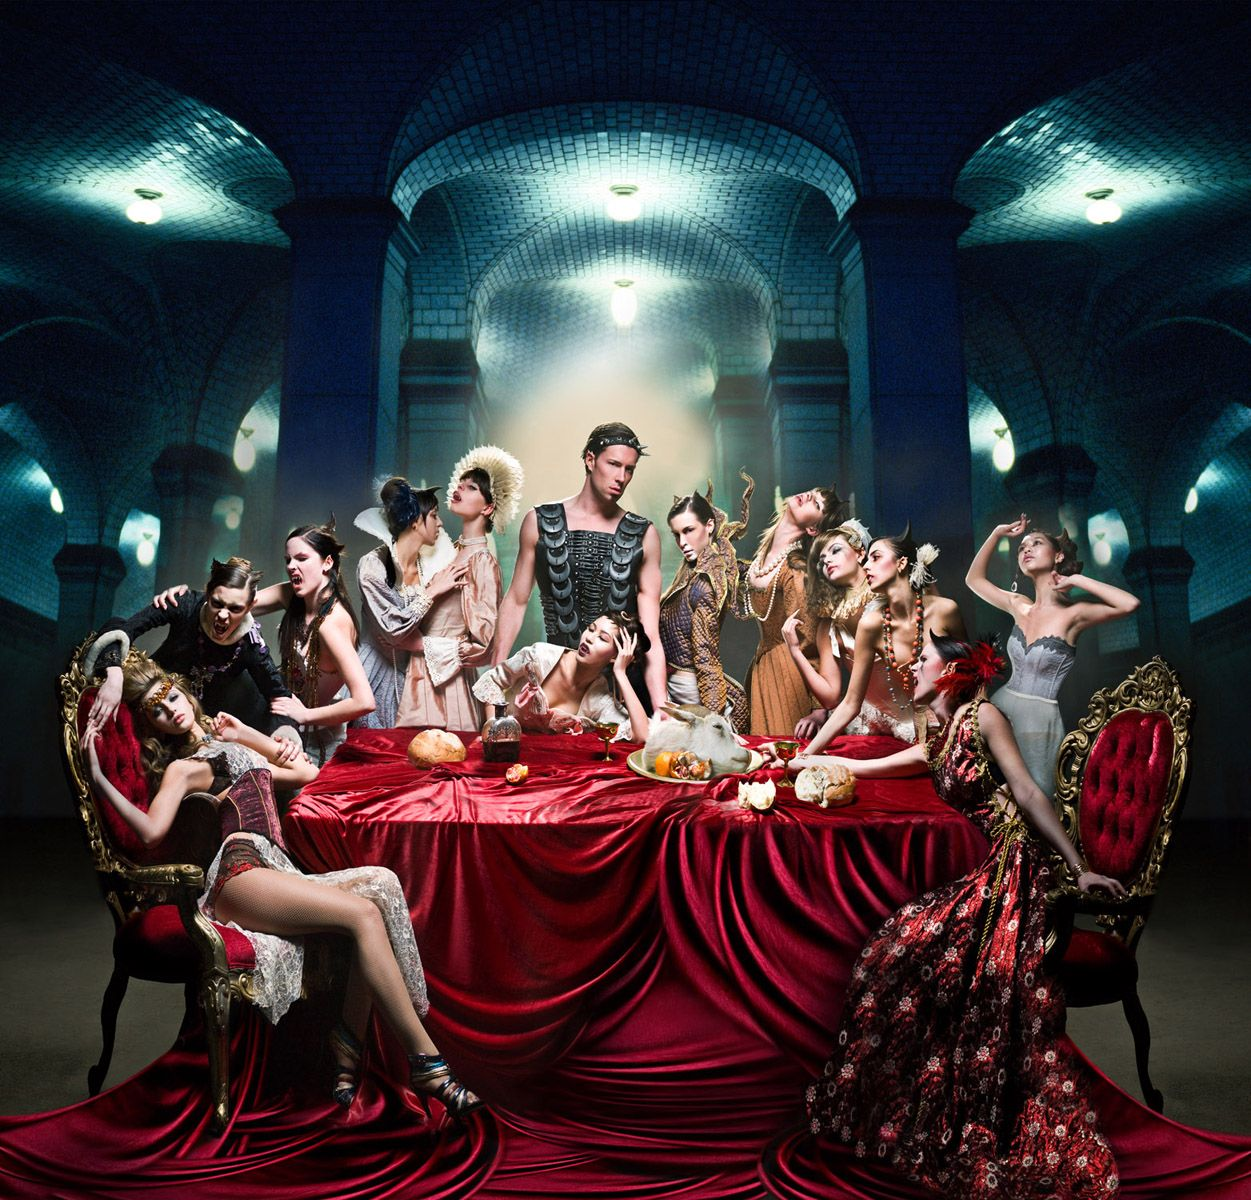 The Last Supper Shoot Last Supper Photography Art Parody